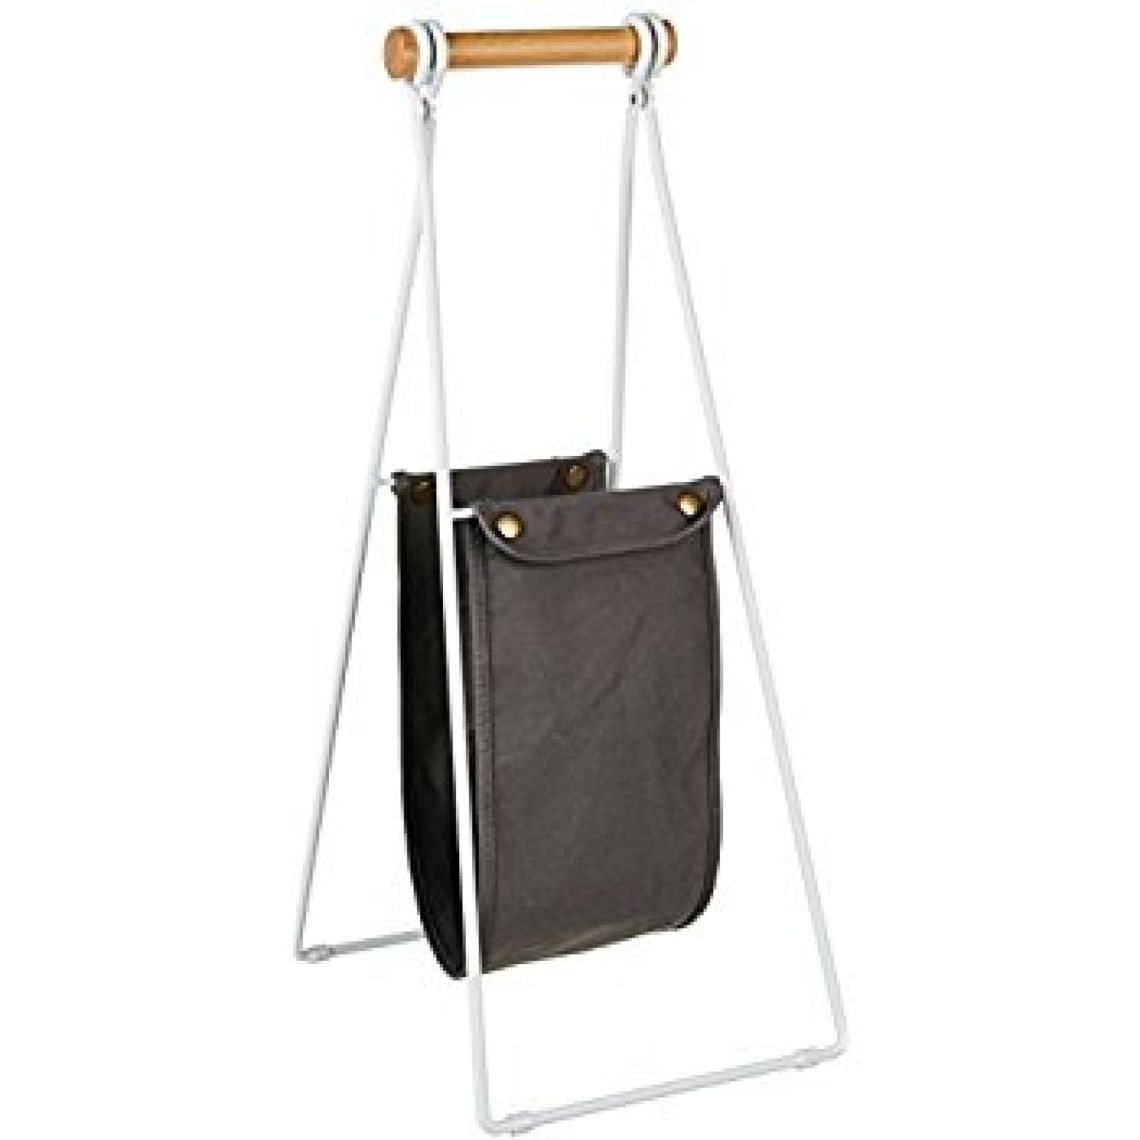 Amazon.com: AmazonBasics Free Standing Toilet Paper Stand with Sling Reserve - White/Beech: Home & Kitchen